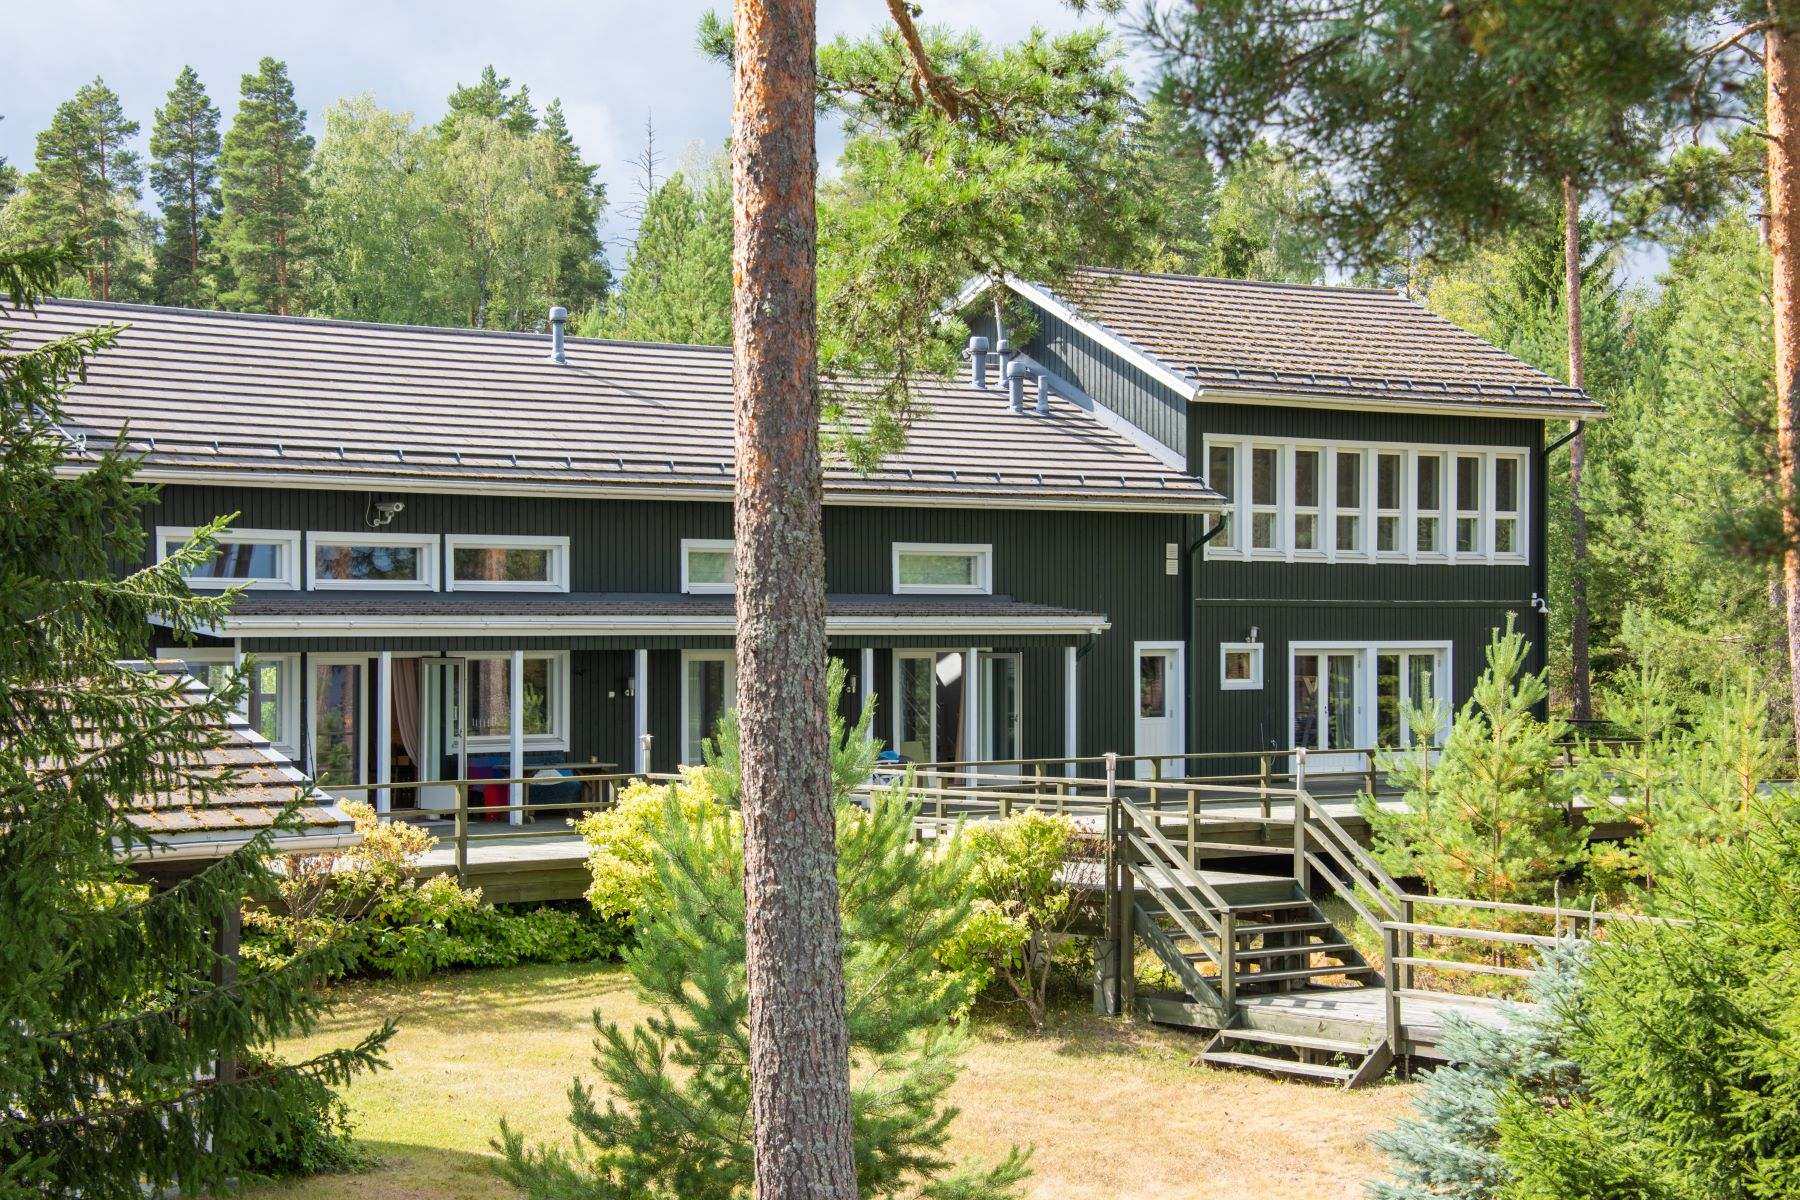 Other Residential Homes for Sale at Hiidenkivi Rajakaari 16 Other Cities In Finland, Cities In Finland 17200 Finland